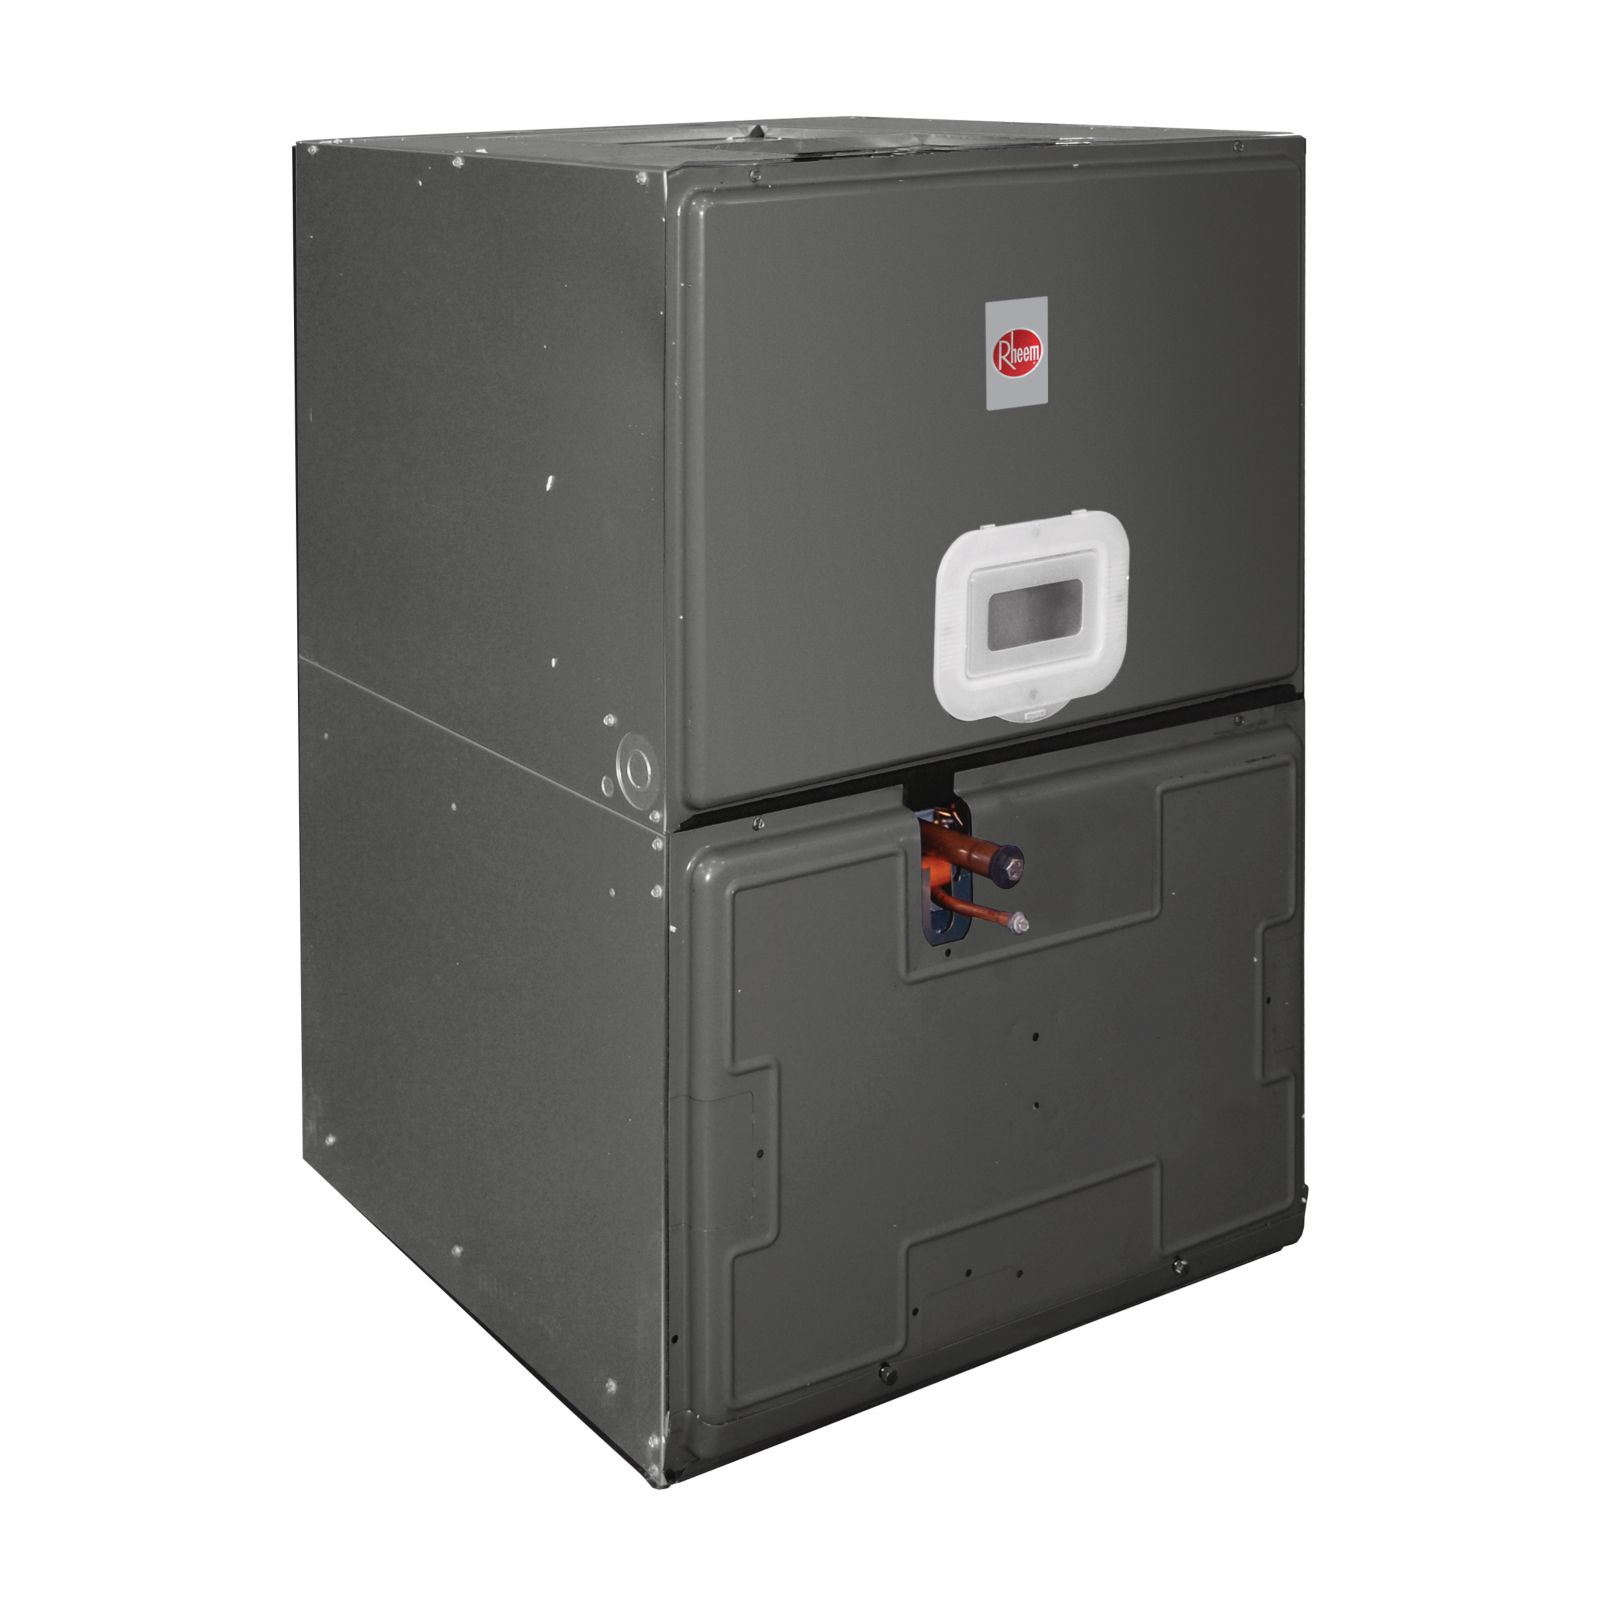 Rheem Rbhp 25j11sh7 Series Multiposition Air Handler With X Ac Wiring Diagram View Full Size In New Tab